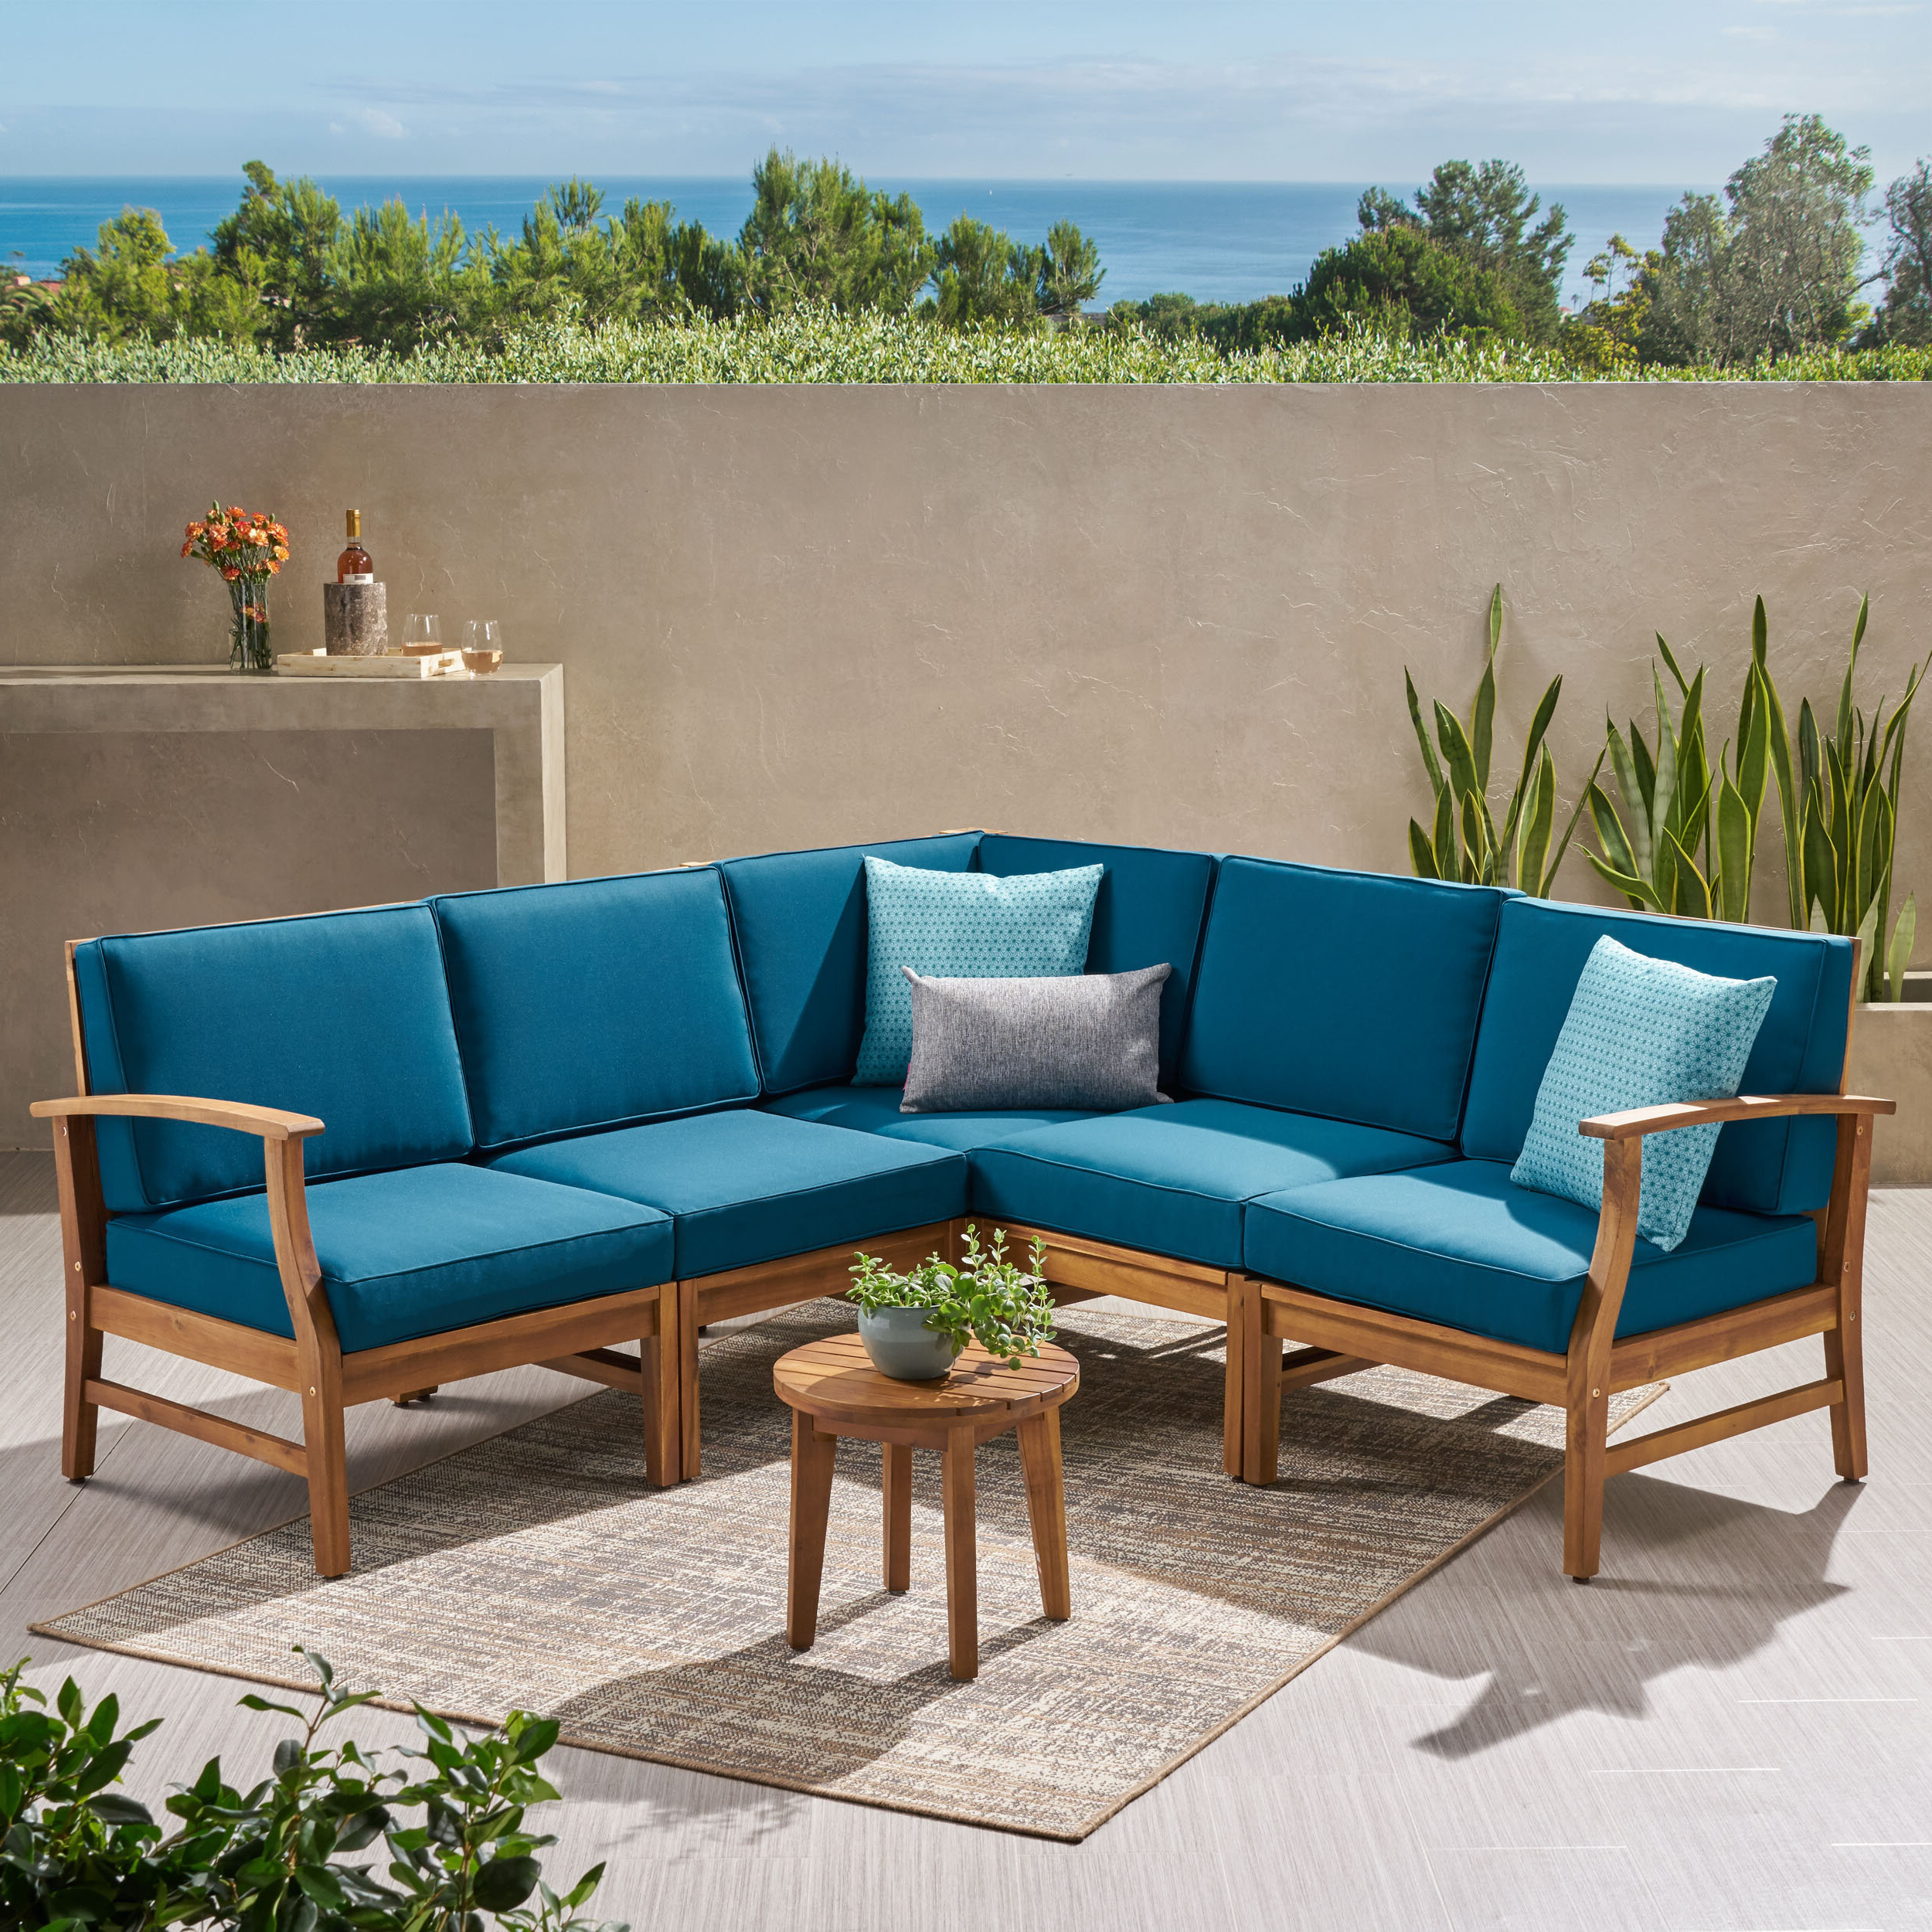 Well Liked Antonia Teak Patio Sectional With Cushions Pertaining To Eldora Patio Sectionals With Cushions (View 8 of 25)